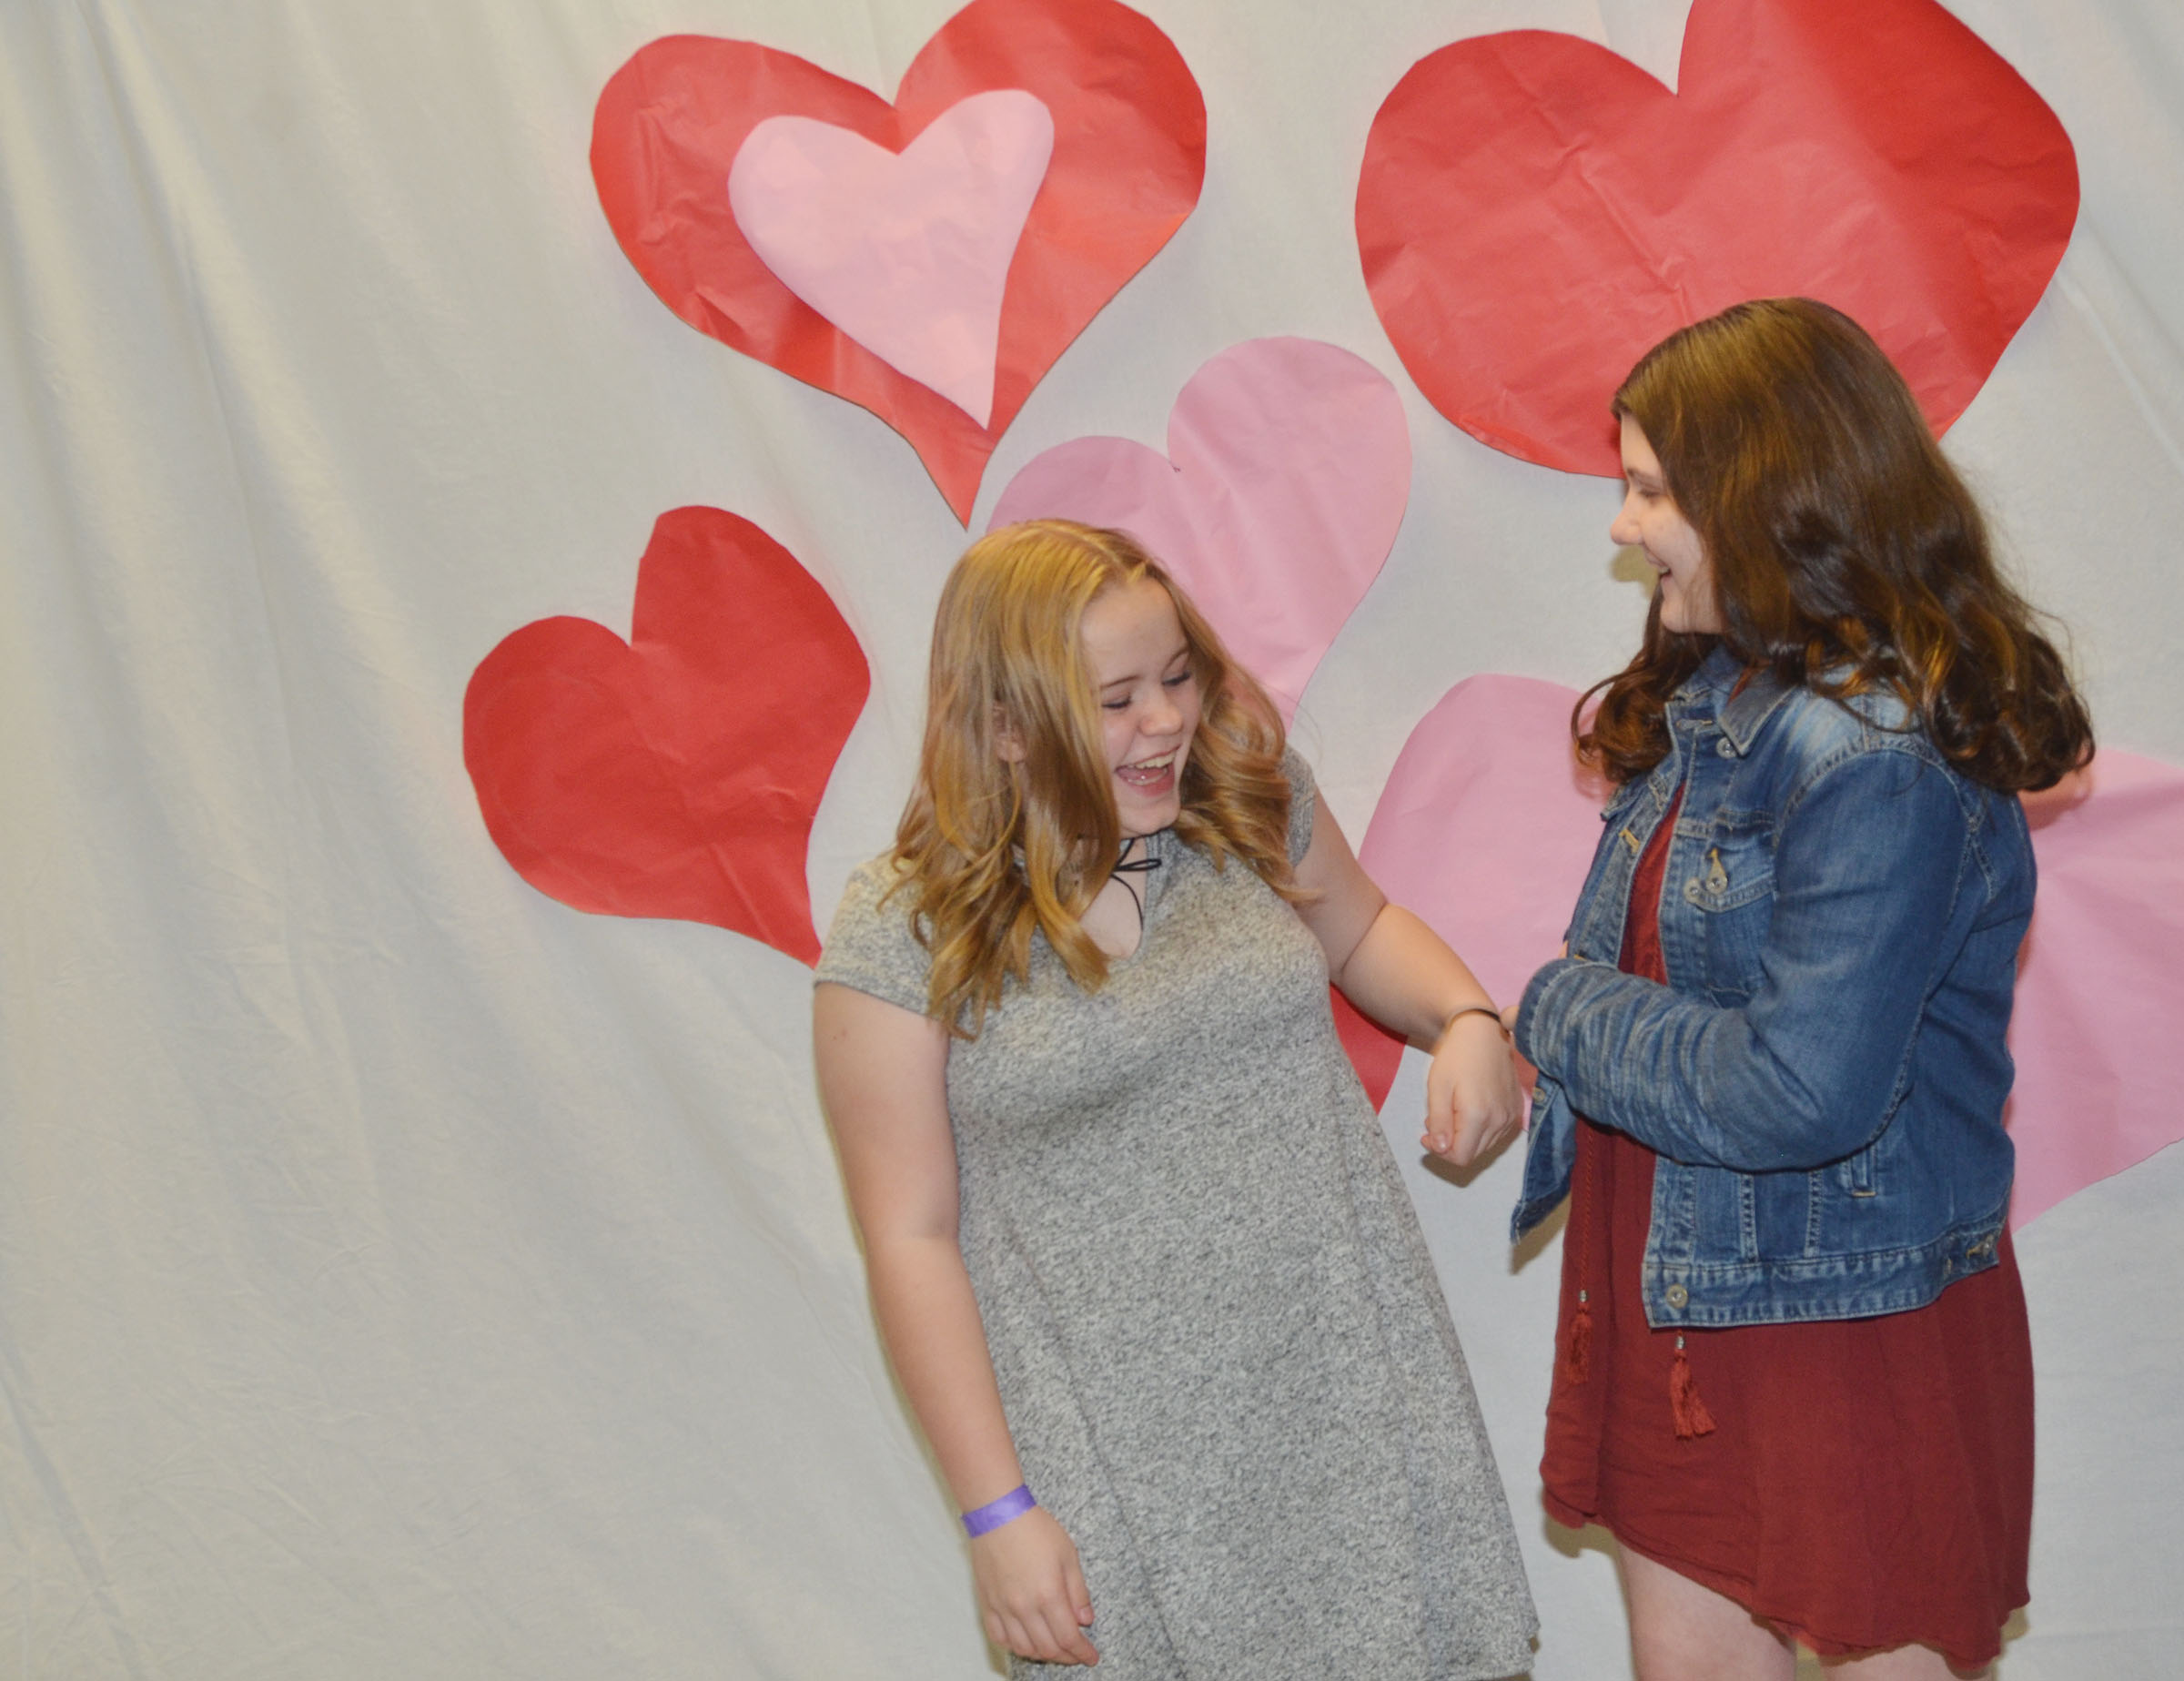 CMS seventh-graders Riley Rainwater, at left, and Skyler Olinski share a laugh before they take a photo together.